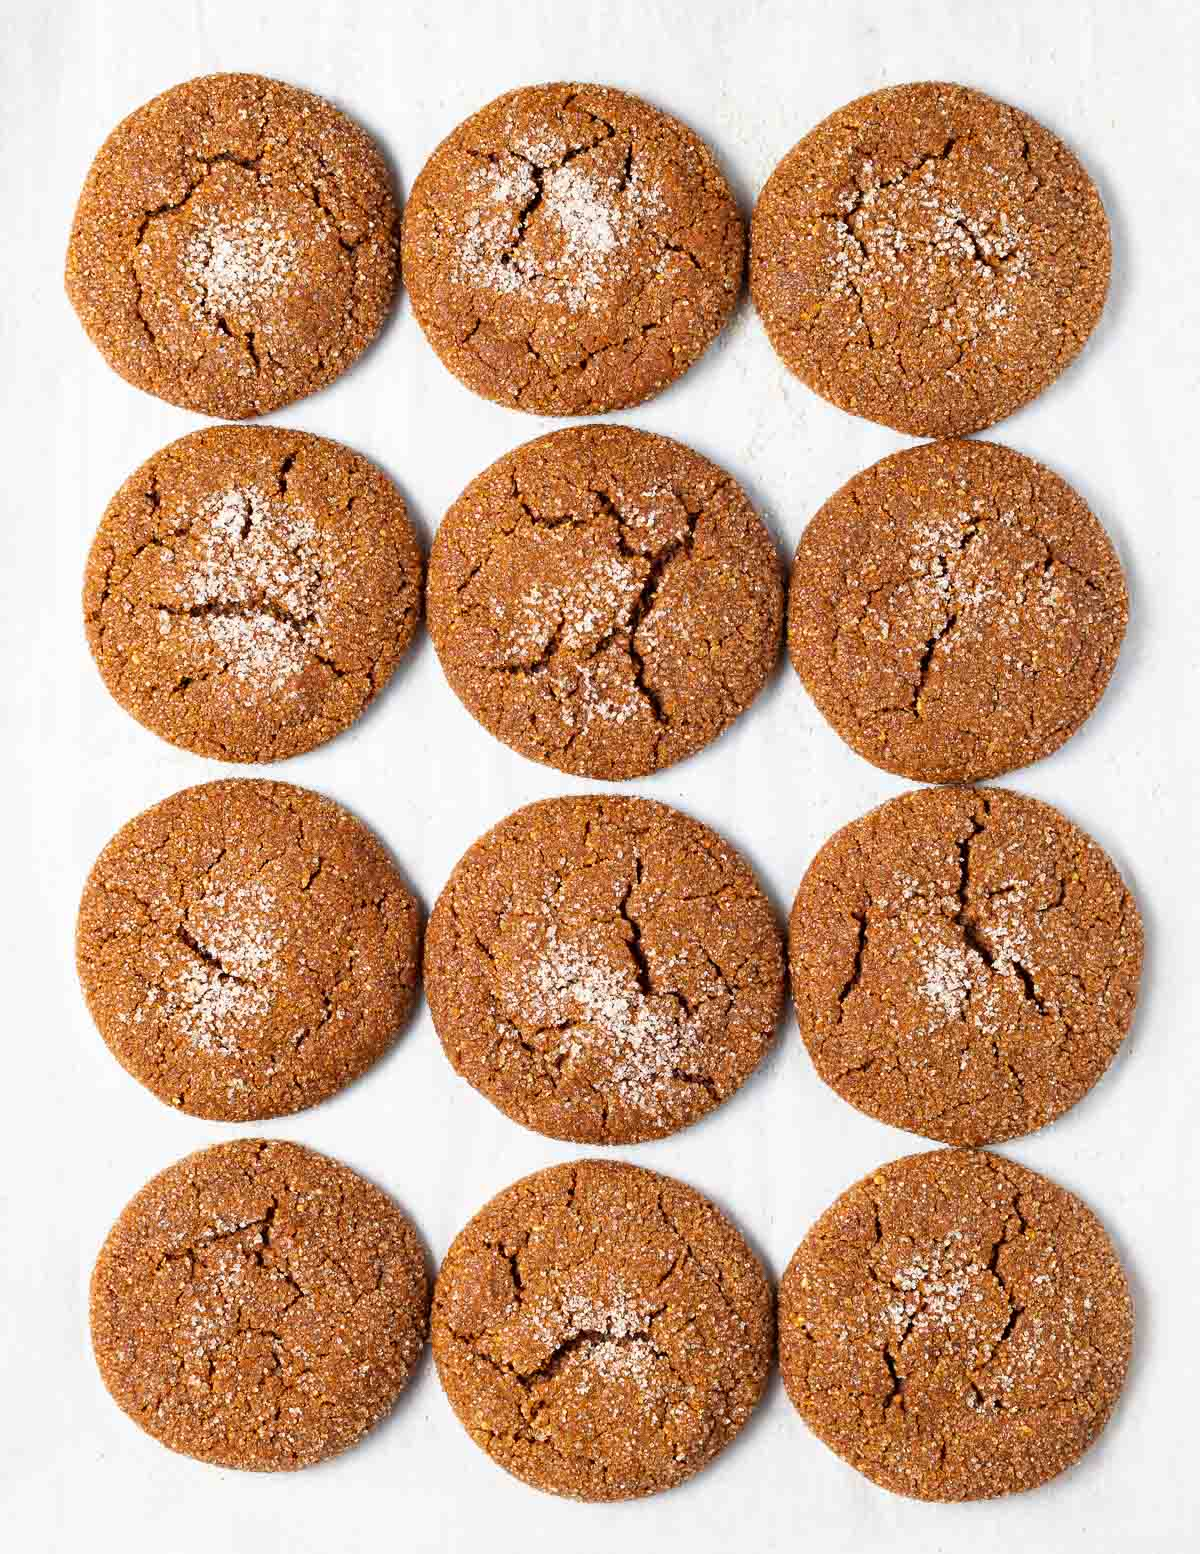 molasses cookies on a baking tray